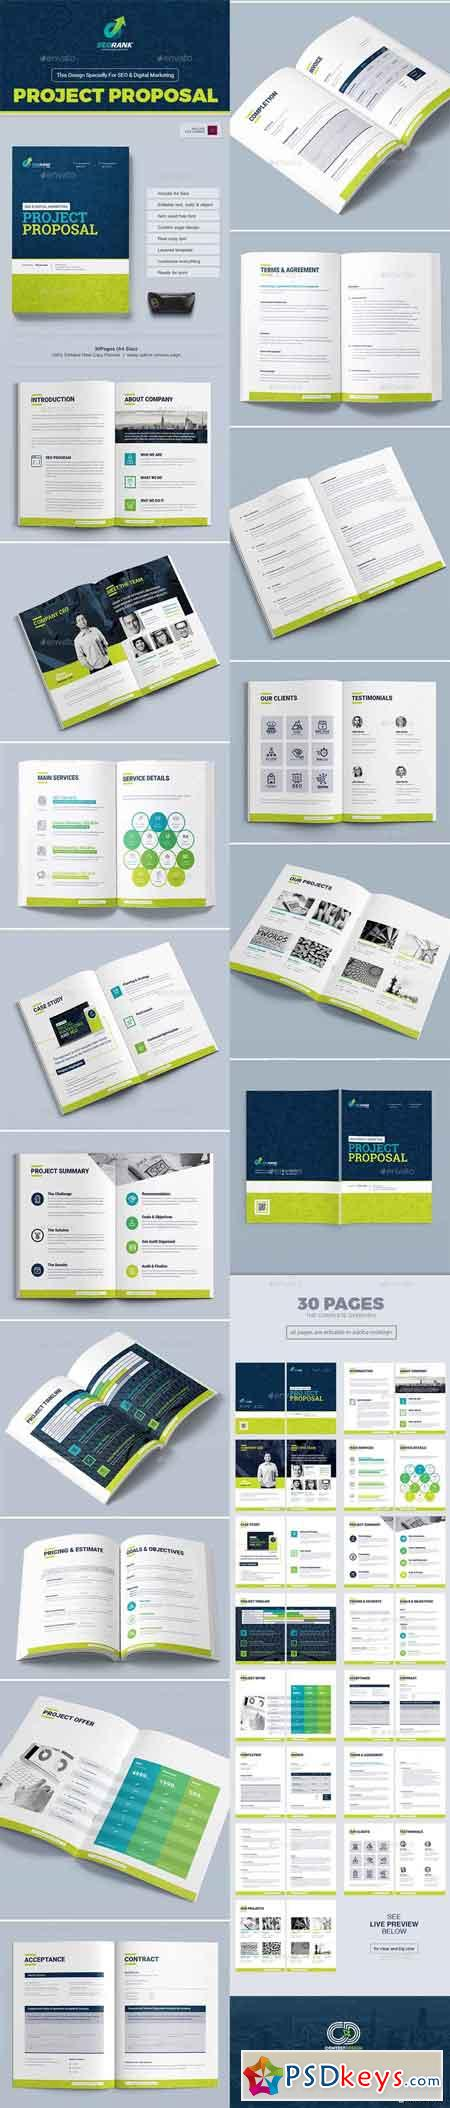 Project Proposal Template For Seo Digital Marketing Agency Company